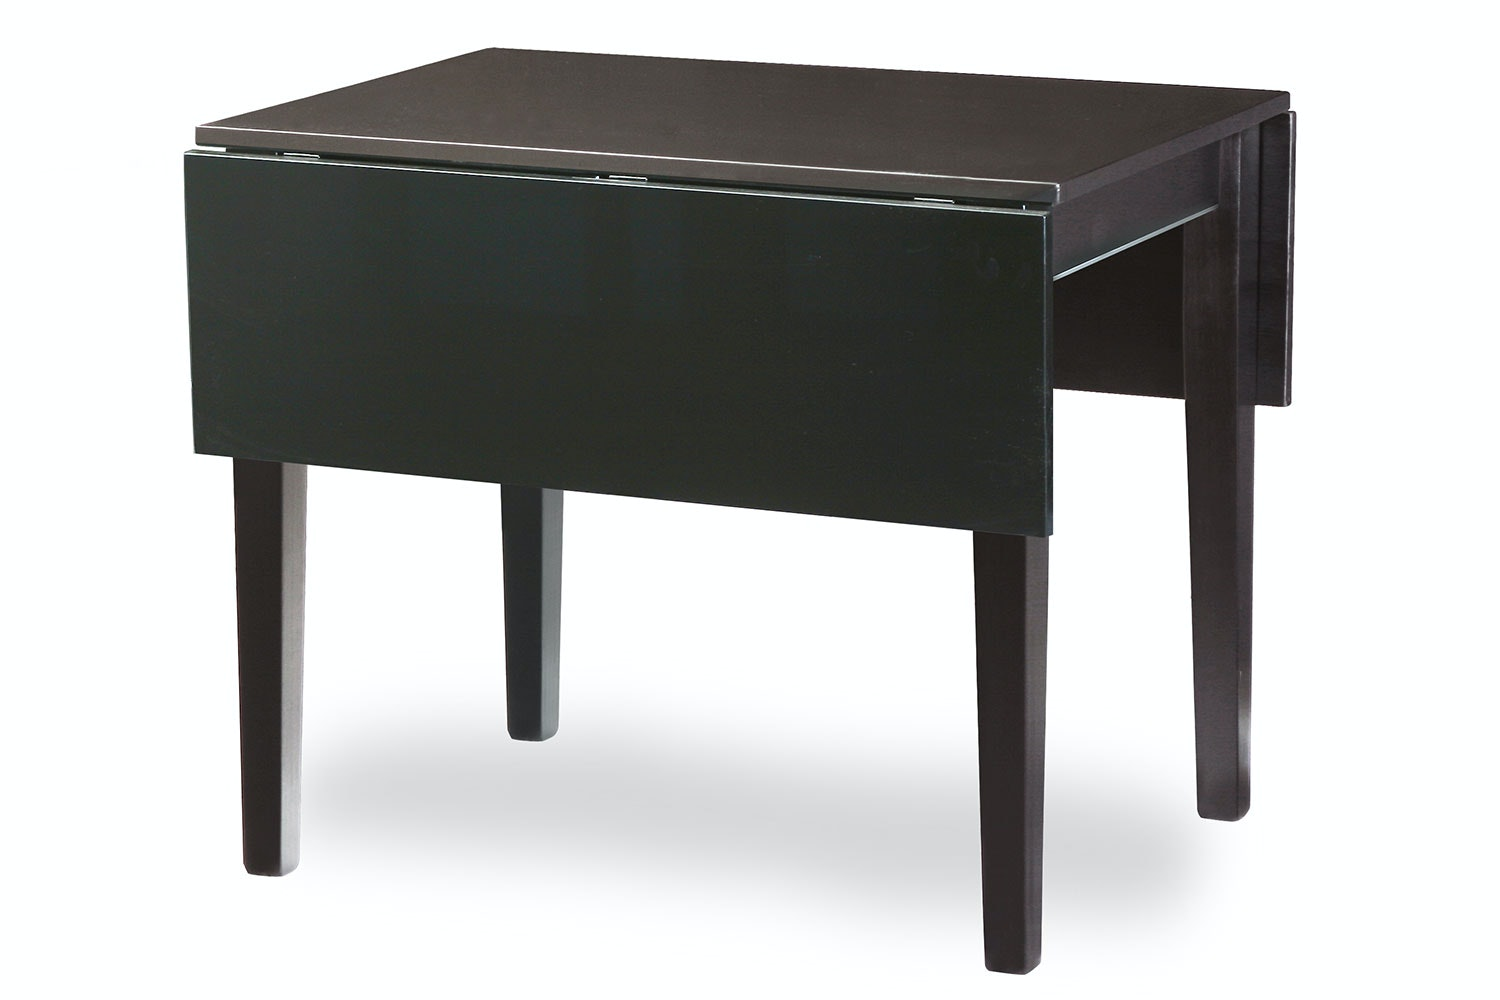 Metro Dining Table Drop Leaf by Coastwood Furniture